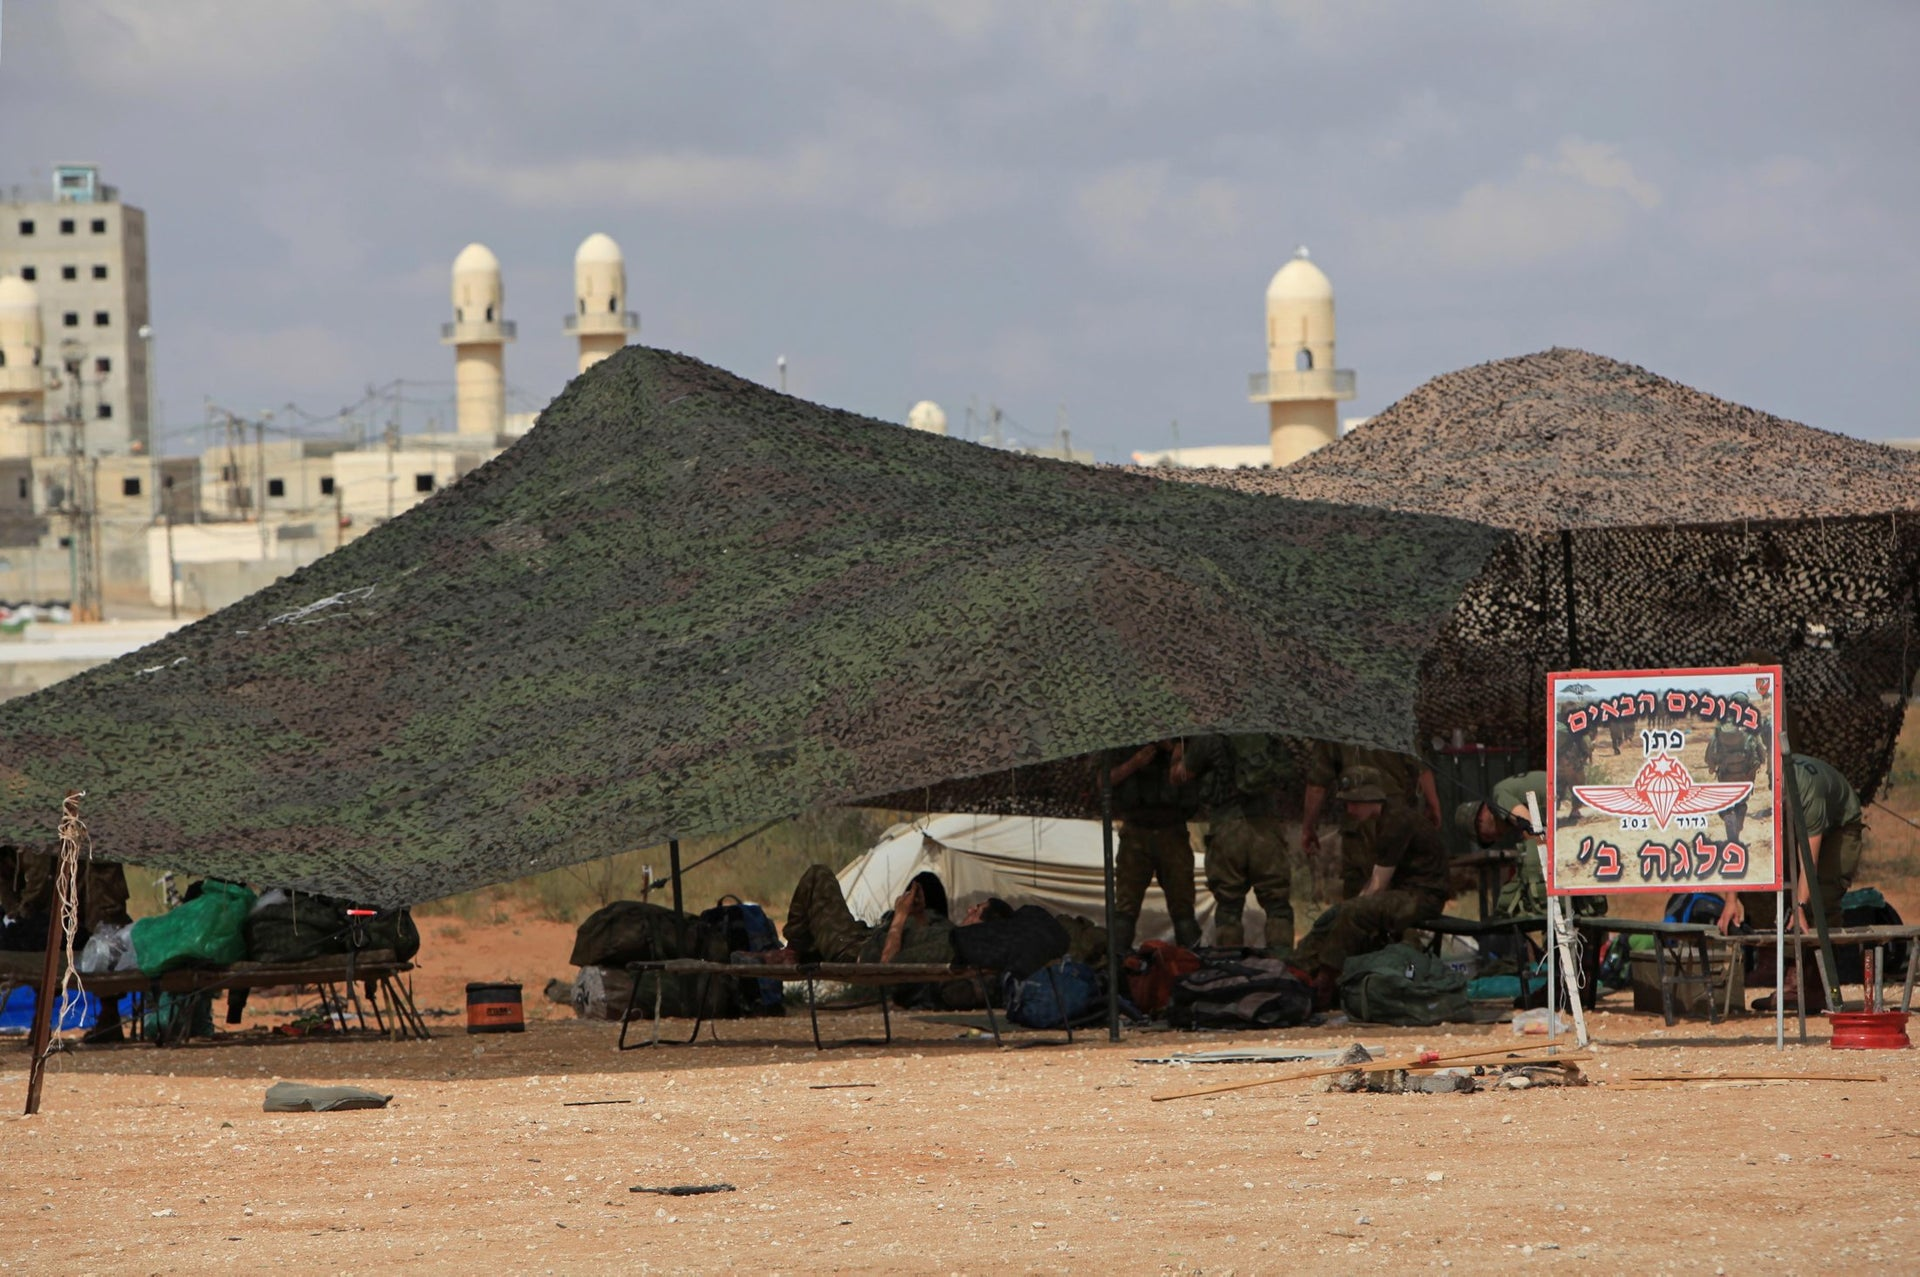 The Tze'elim army base, with fake Palestinian town in the background.